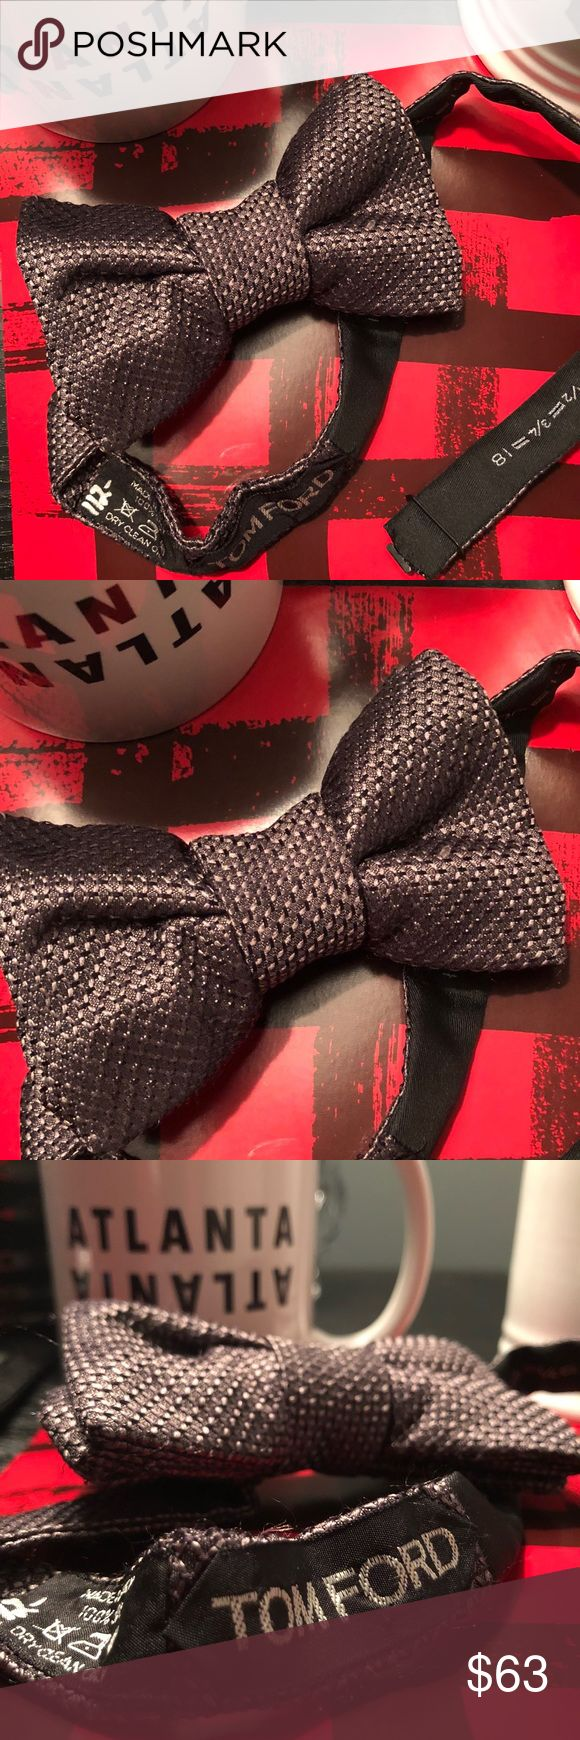 """Tom Ford Bow Tie All items in my closet are 100% Authentic. This is a great bow tie you can never go wrong with a dark """"black"""" bow tie matches with everything. Tom Ford is one of the best designer brands & one of my favorite. No cleaner look! Ask any questions you may have thanks! Tom Ford Accessories Ties"""